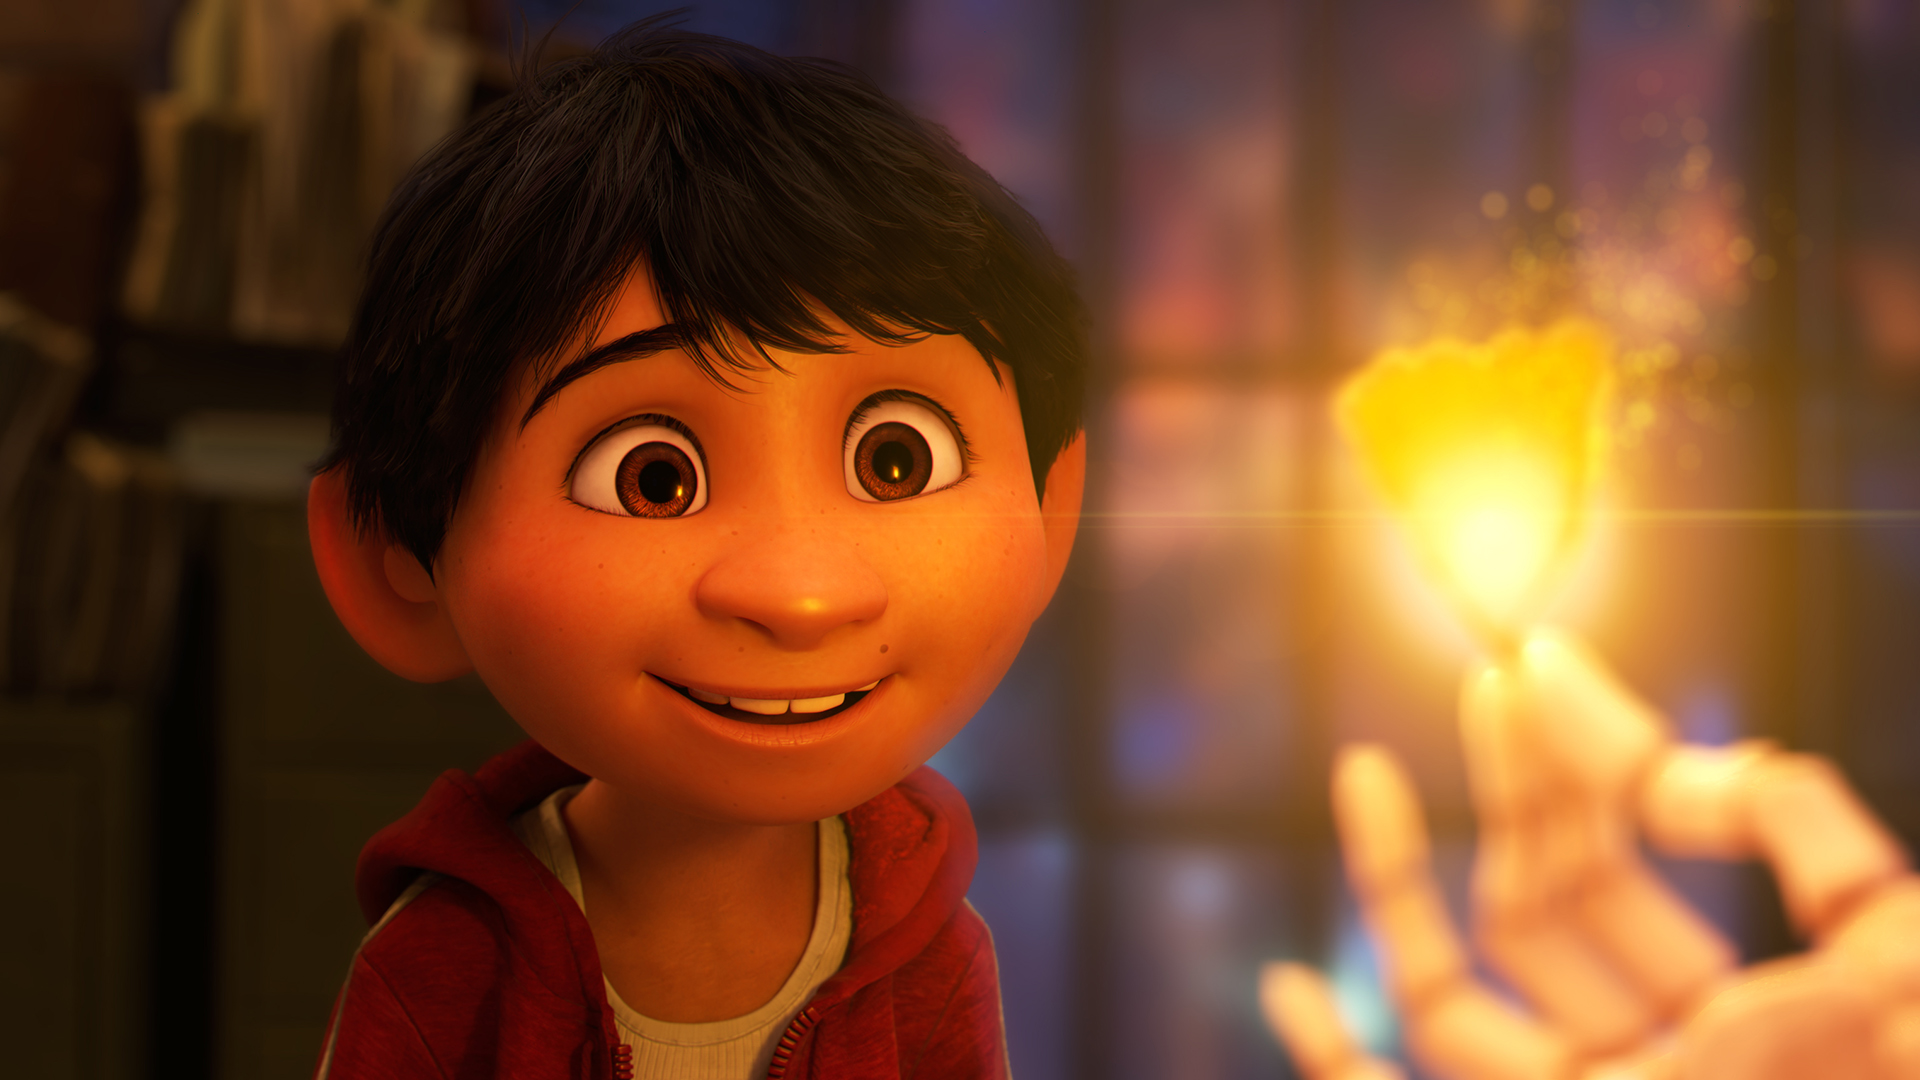 Movie Watch: Amarillo film options for Nov. 22 to 30, including 'Coco,' 'Roman J. Israel, Esq.'